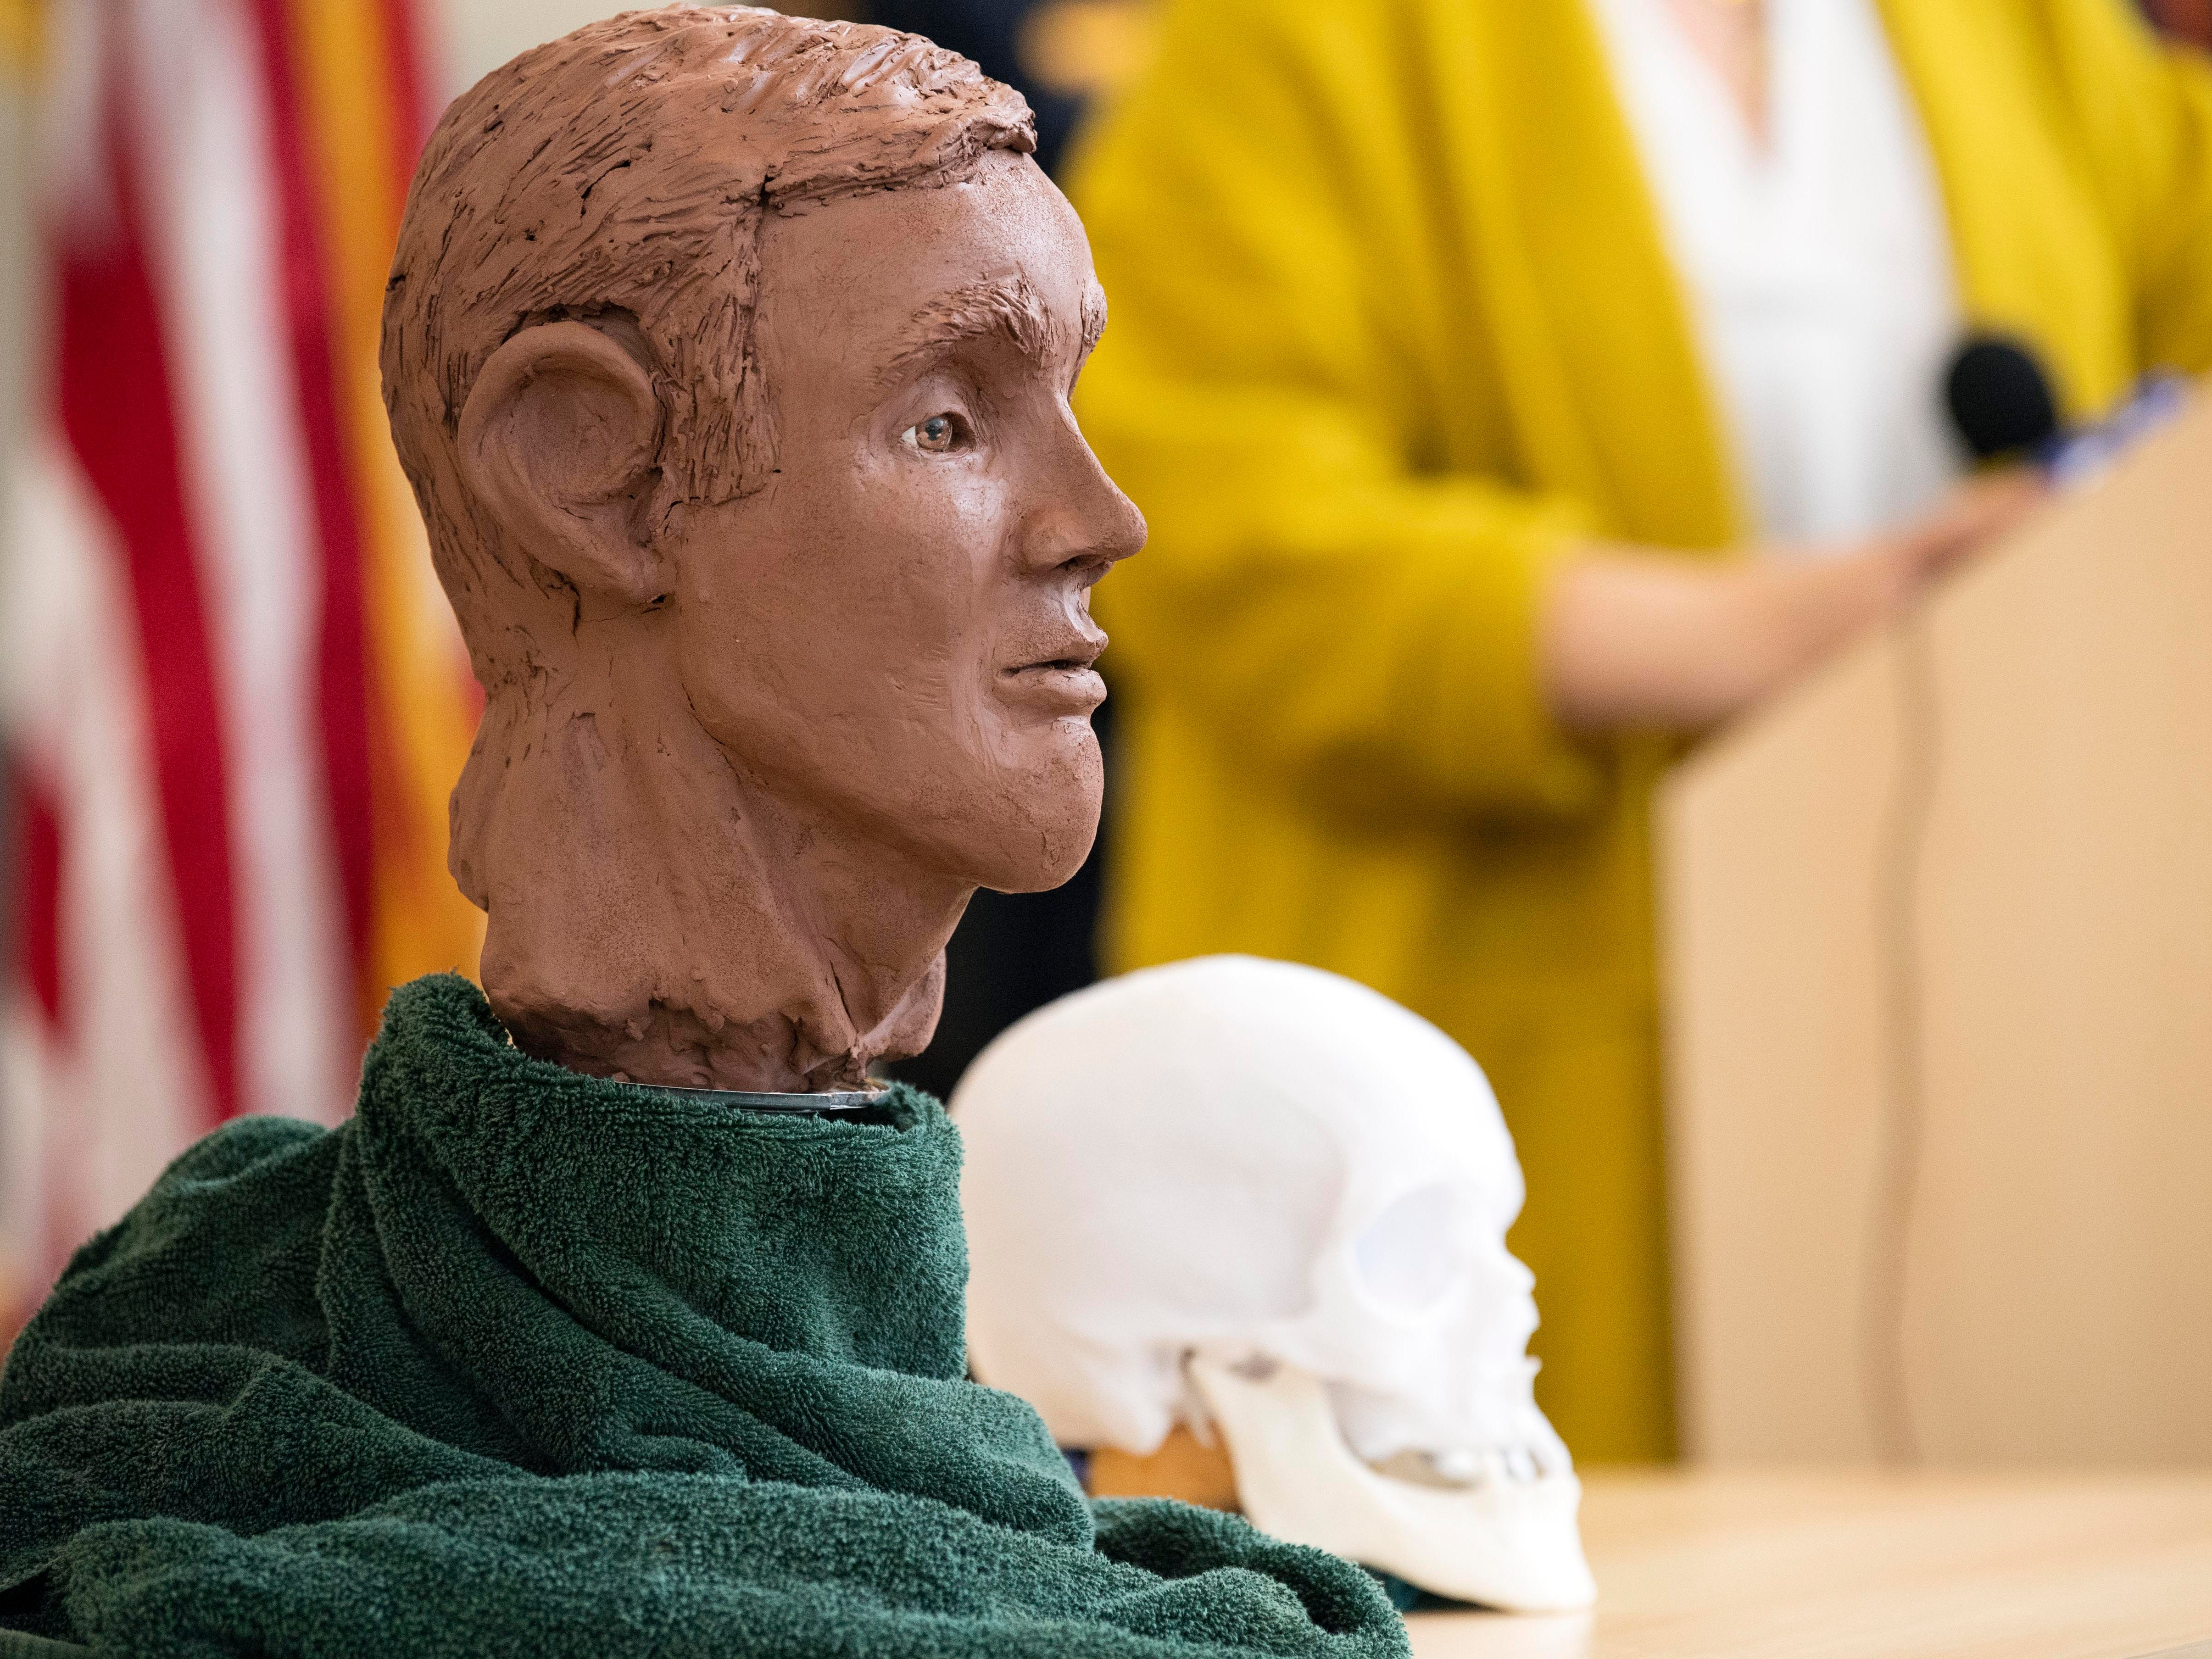 Forensic artist Jenny Kenyon speaks about her clay sculpture, showing what the victim of a 2013 cold case homicide might have looked like. It was displayed during a news conference to update the public on the still-unidentified remains found in West Manchester Township.